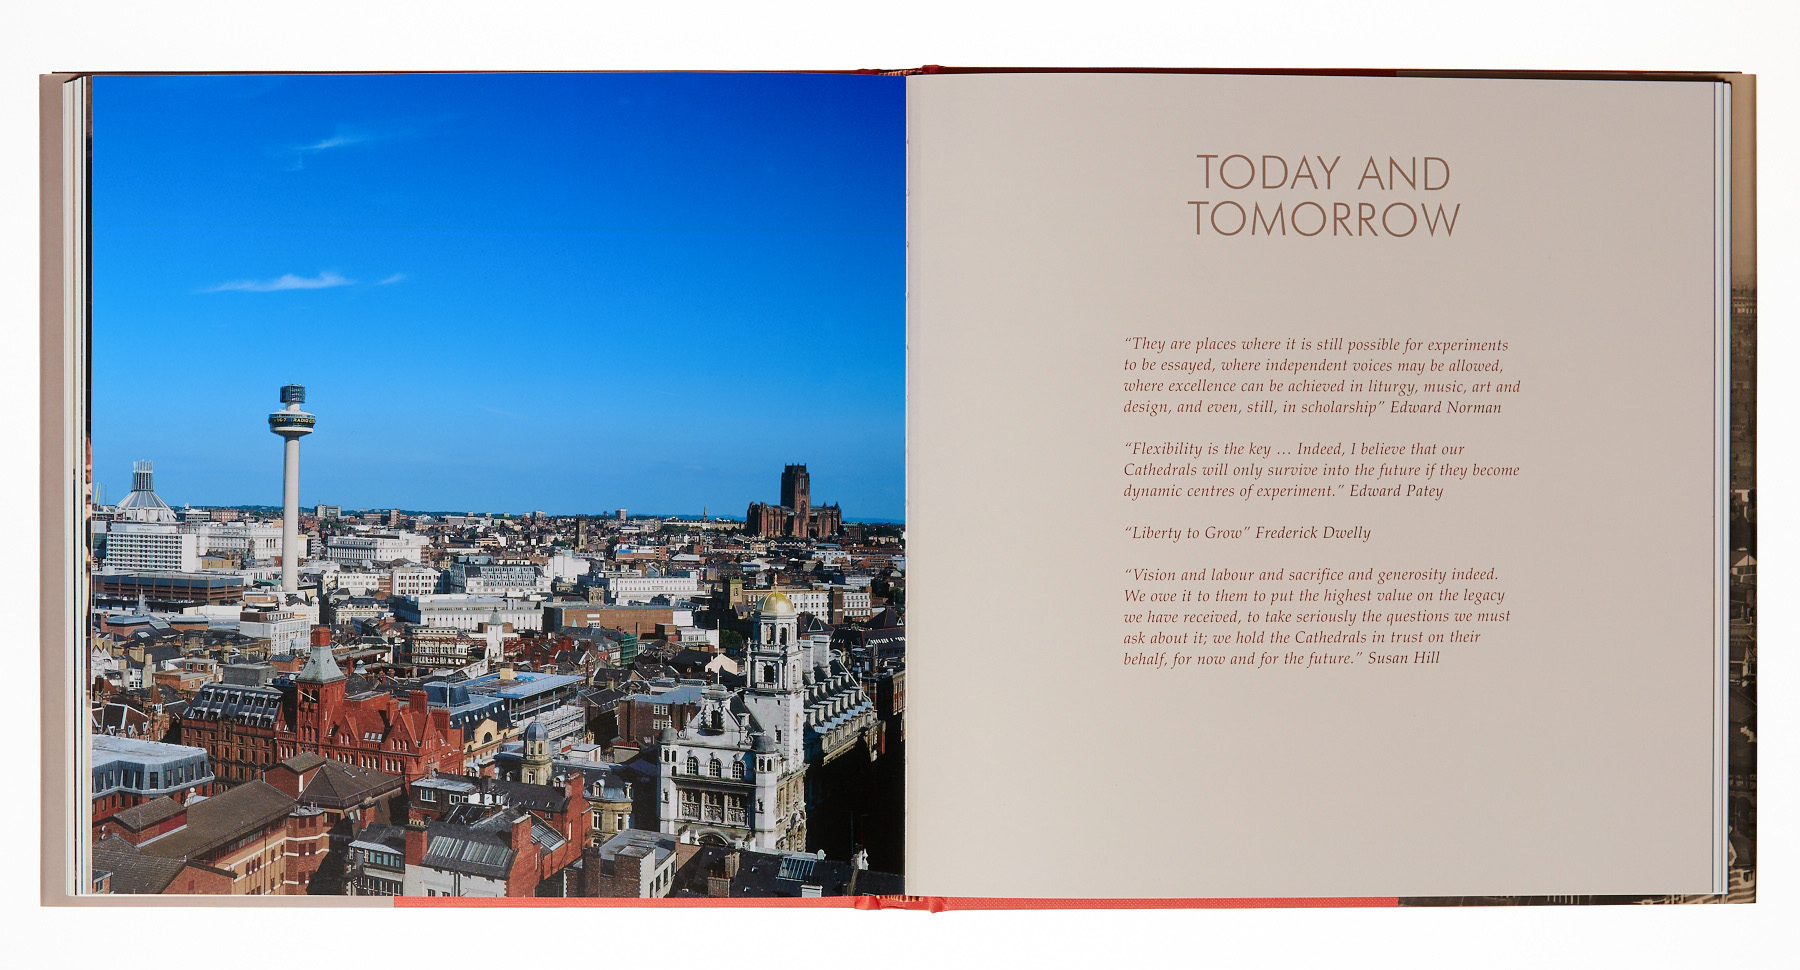 liverpool-cathedral-book-page-116.jpg